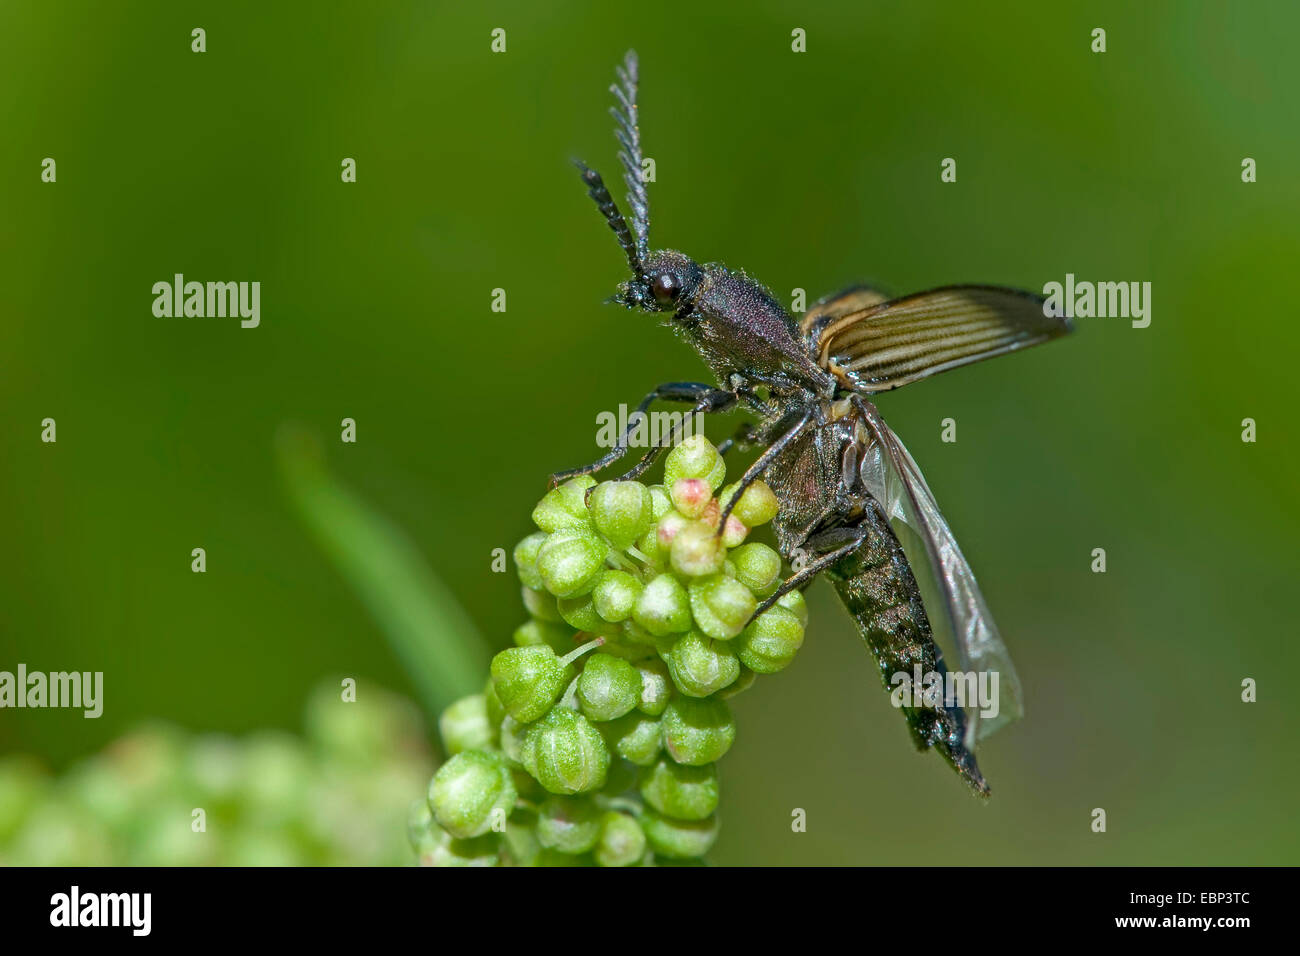 Click beetle (Ctenicera cuprea), on a budding inflorescence, Germany - Stock Image